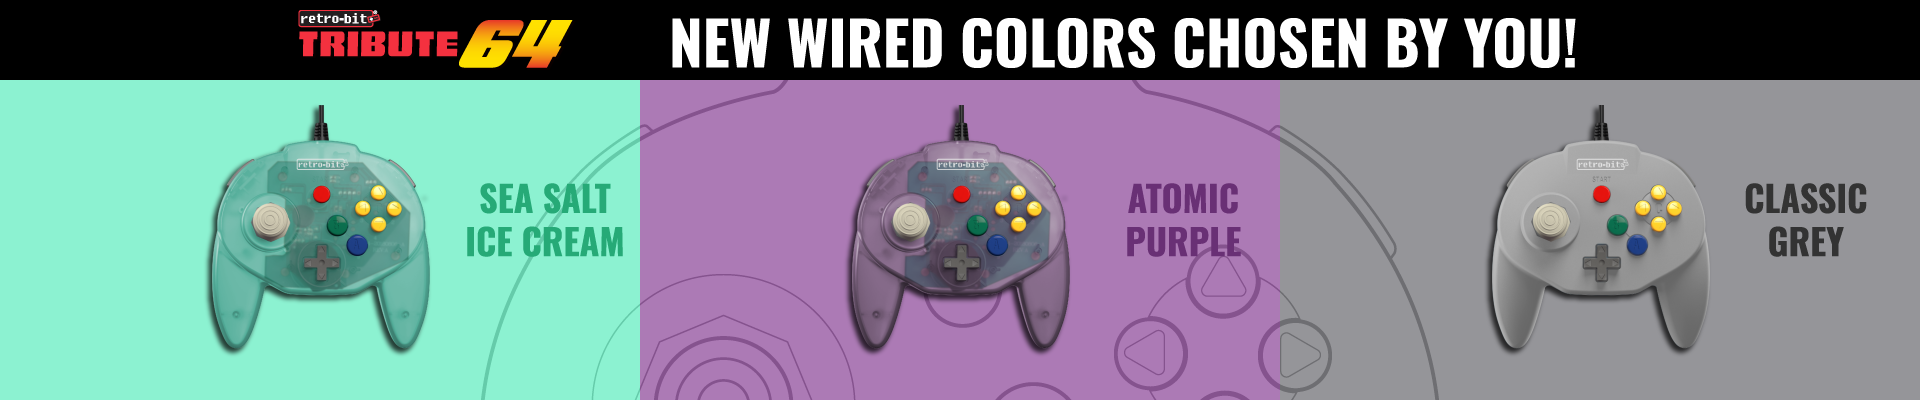 Tribute64, N64, USB, Retro-Bit, Platinum Collection, New, Colors, Atomic Purple, Sea Salt Ice Cream, Classic Grey, N64